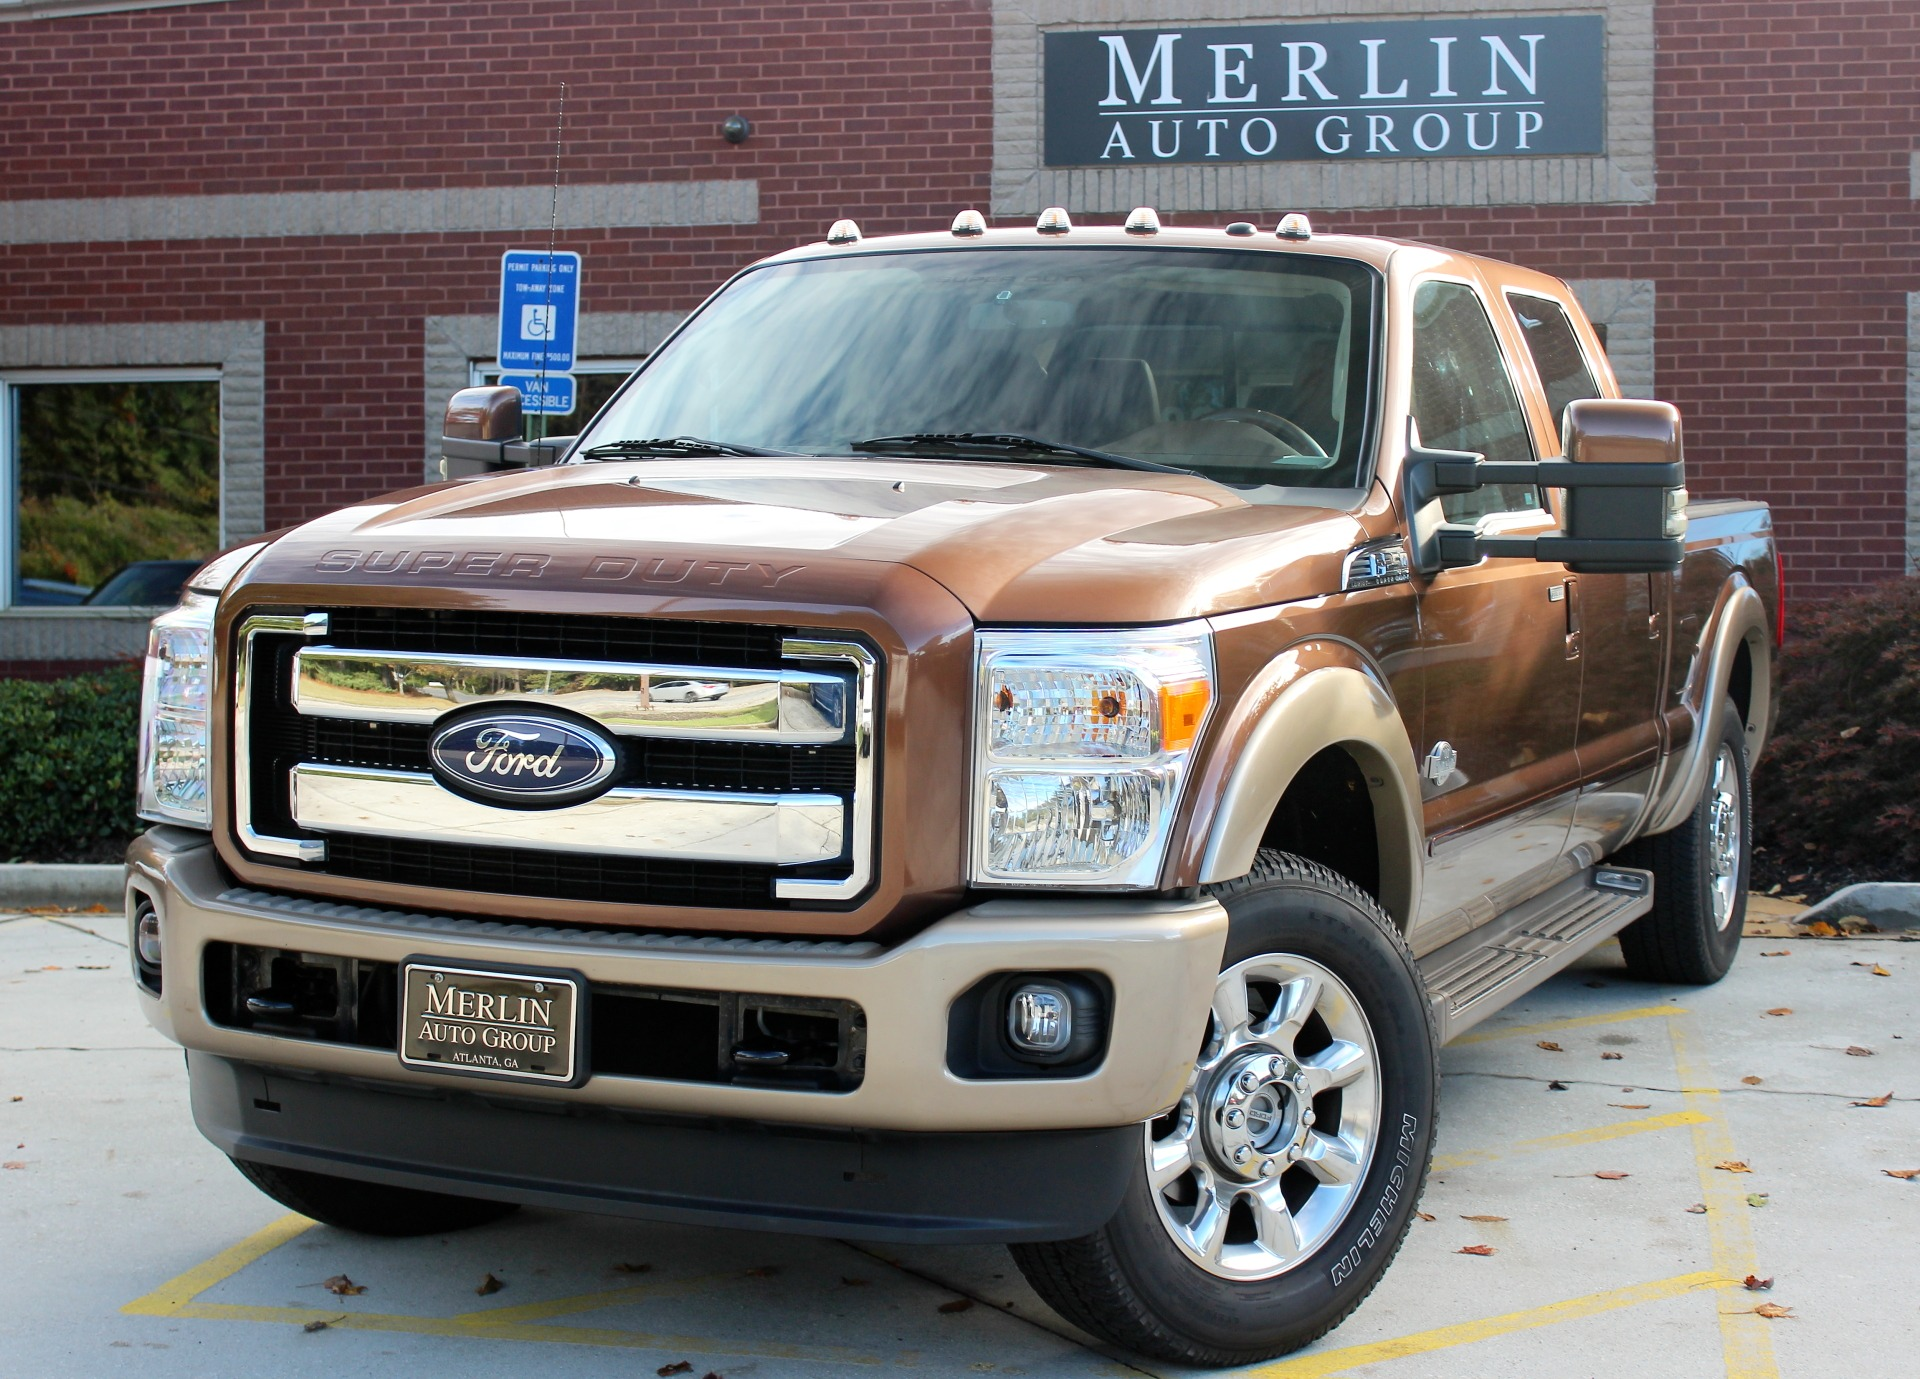 2011 Ford F-250 SD King Ranch Crew cab 4WD 6.7L Turbo Diesel